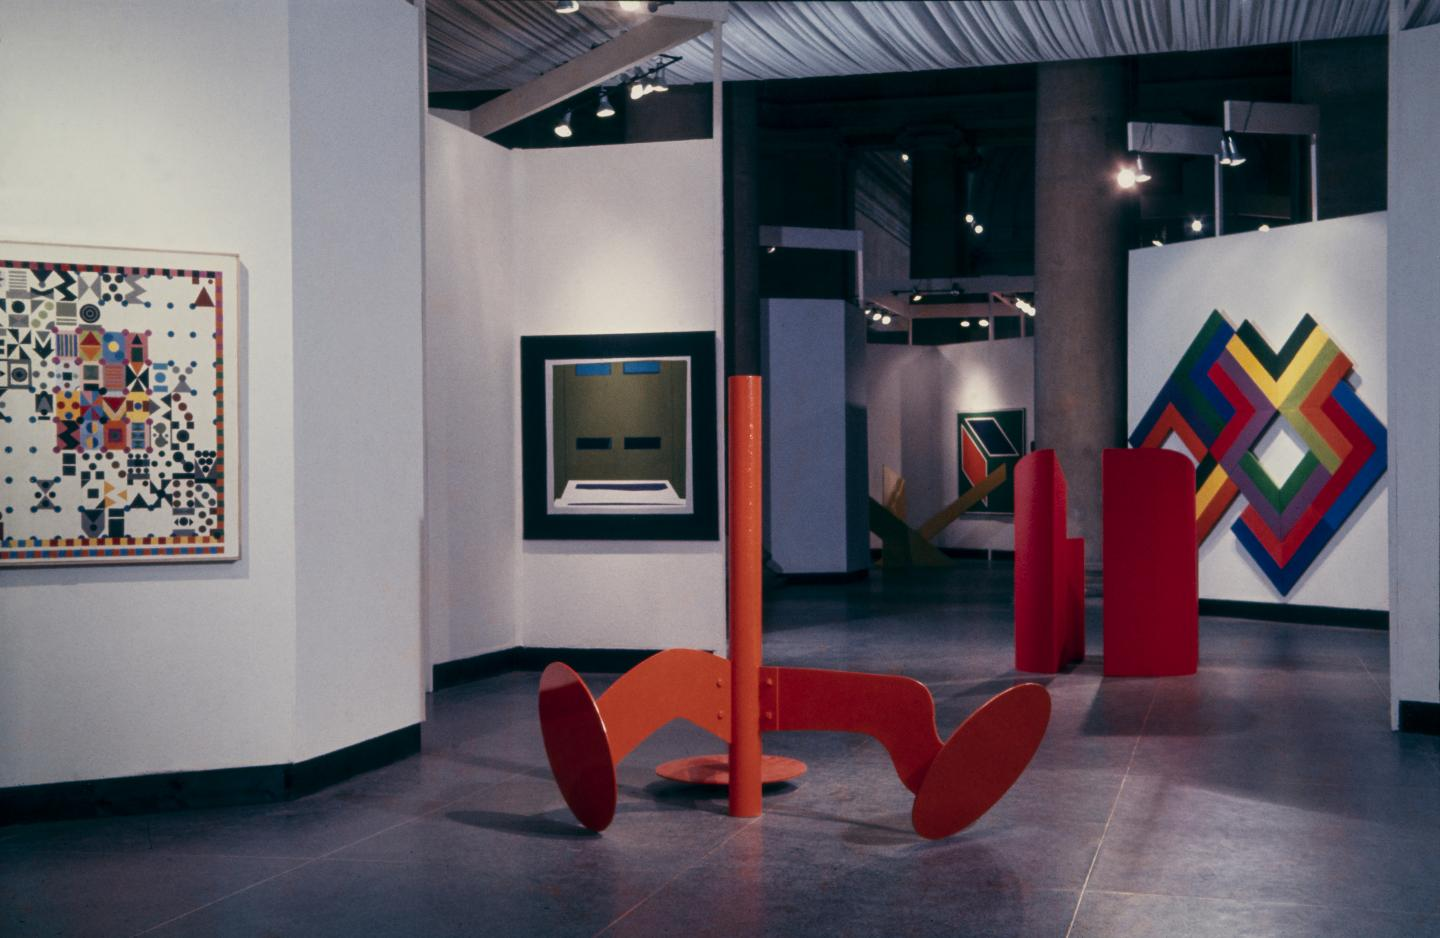 '54–64: Painting and Sculpture of a Decade', 1964, exhibition view, Tate Gallery, London. Courtesy: © Tate, London